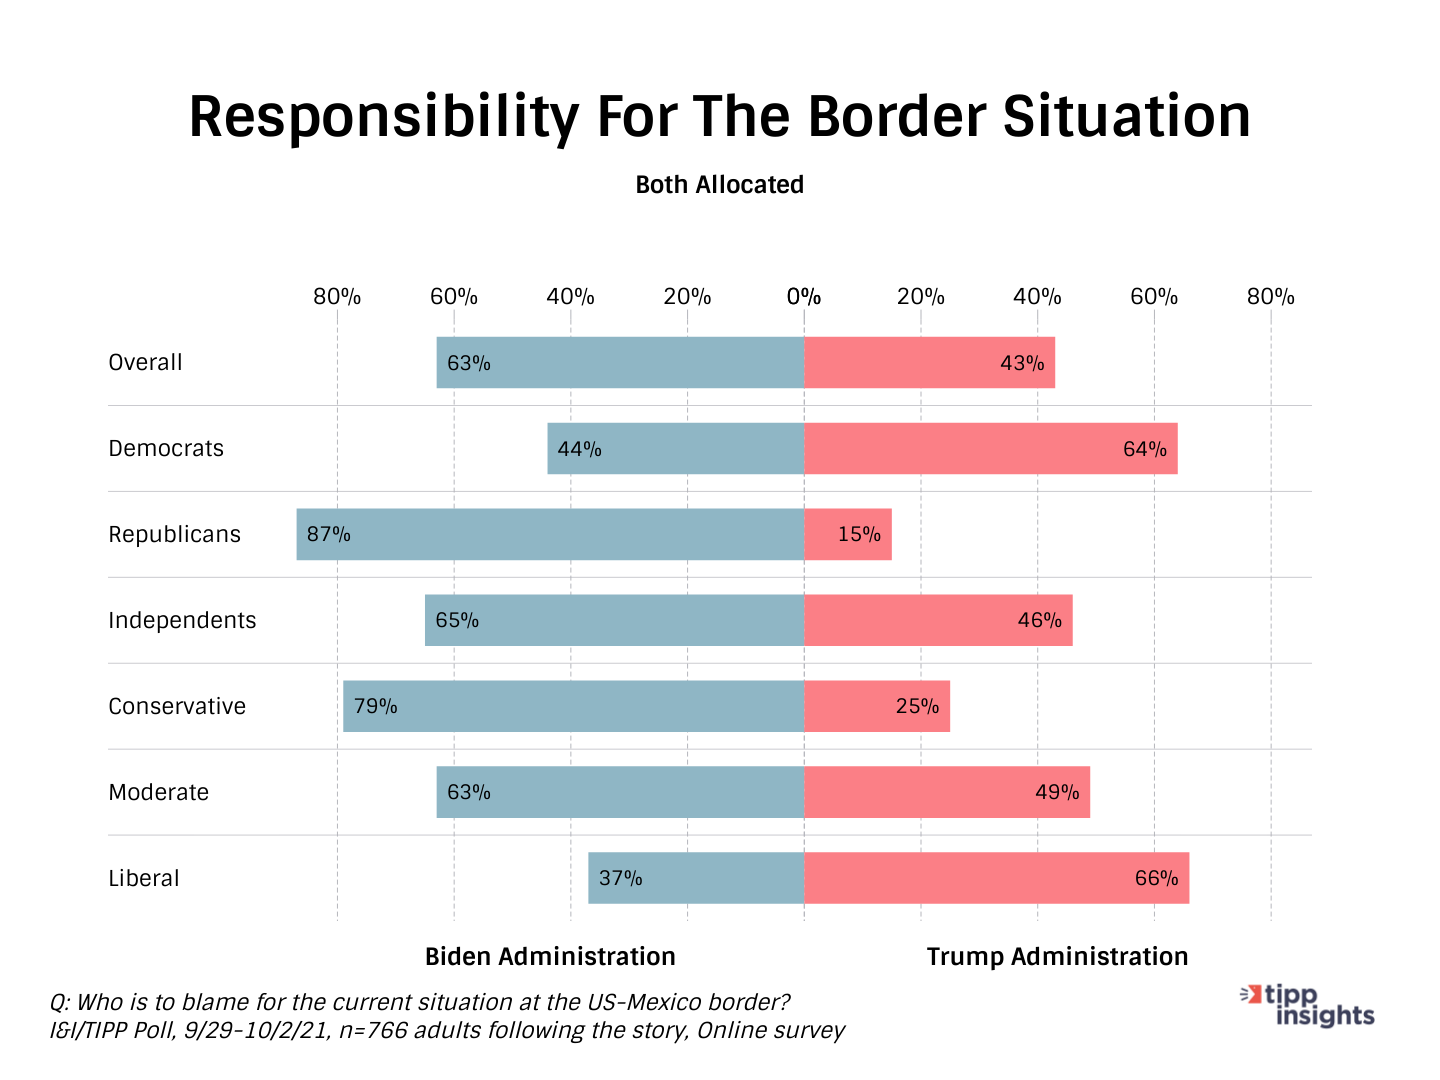 I&I/TIPP Poll Results: Who is responsible for the souther border situation, Biden Administration or Trump